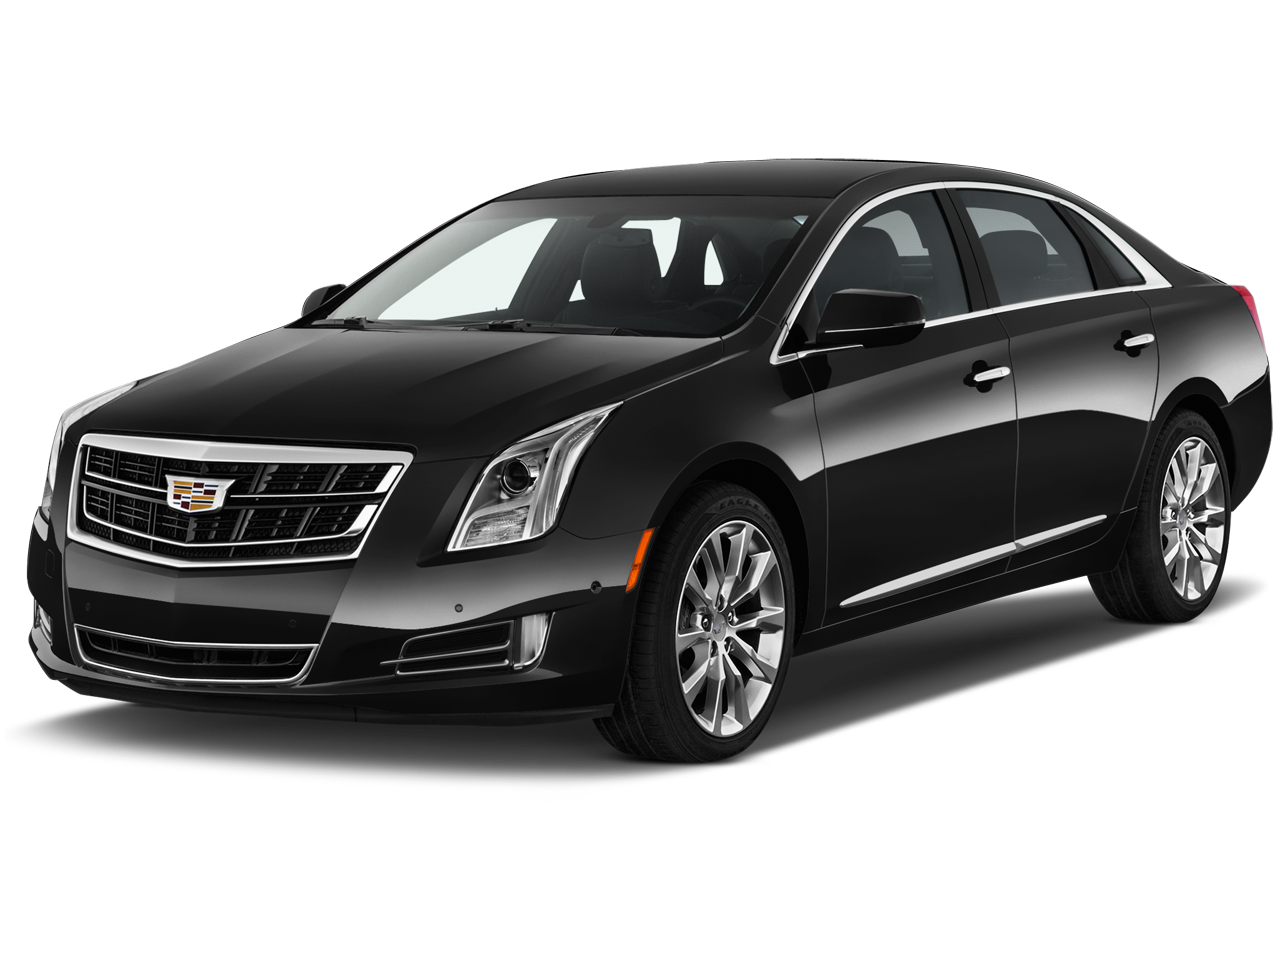 Napleton River Oaks >> New 2018 Cadillac XTS Pro Livery Package - Rockford IL - Shop Napleton